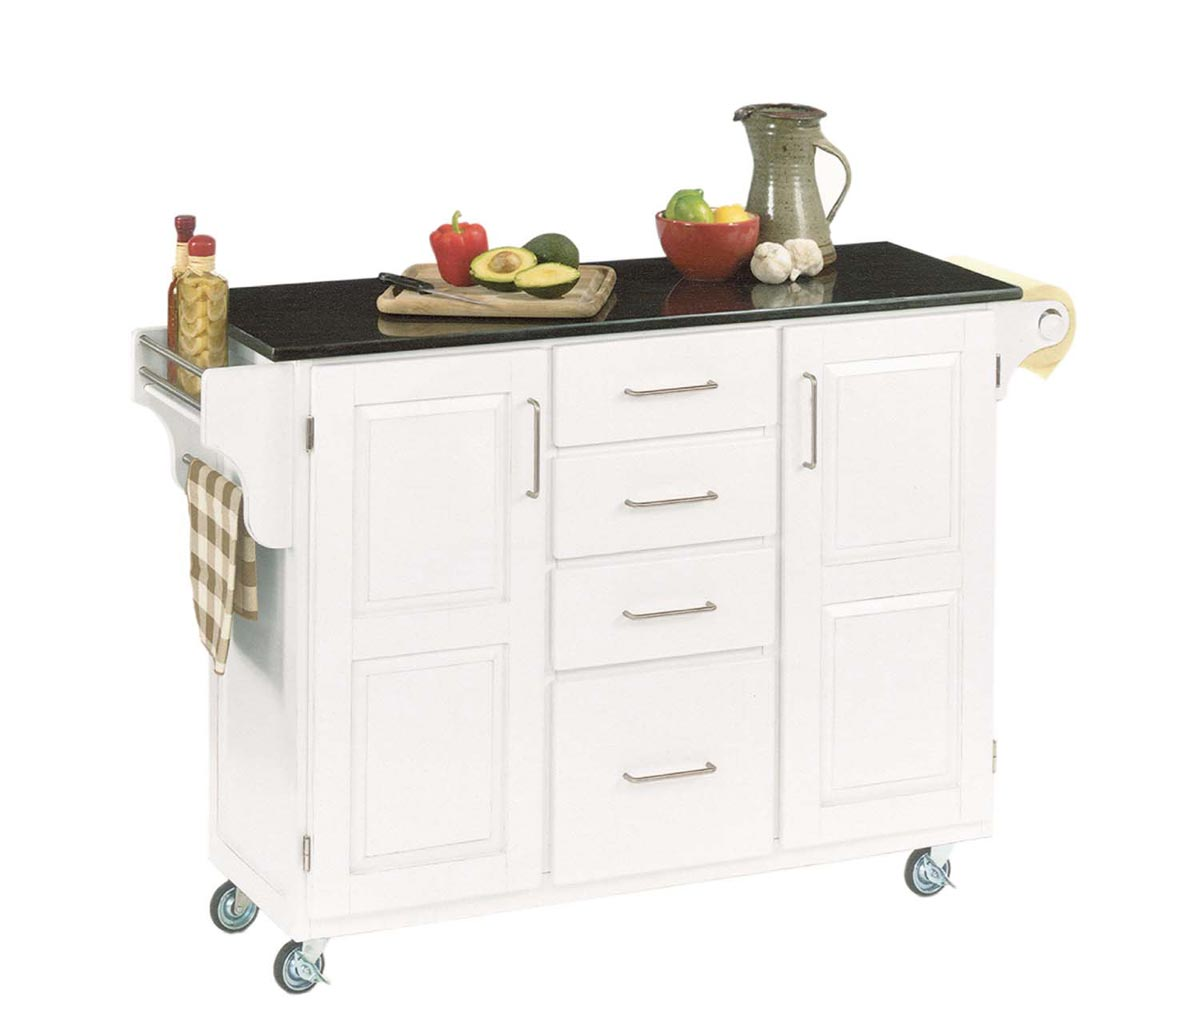 Home Styles Create-A-Cart Black Granite Top - White